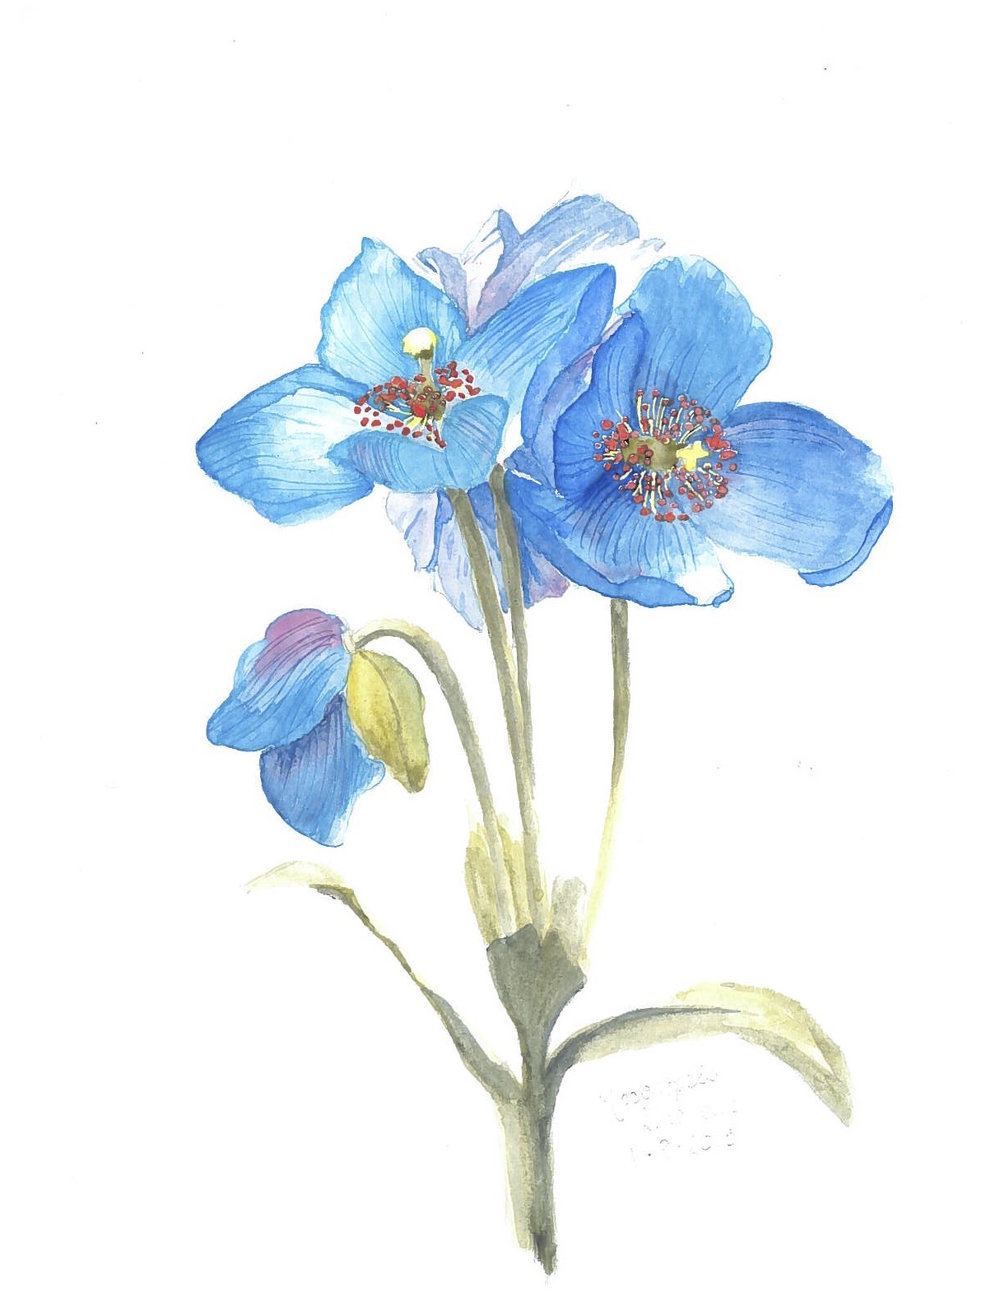 himalayan-blue-poppies-watercolor.jpg